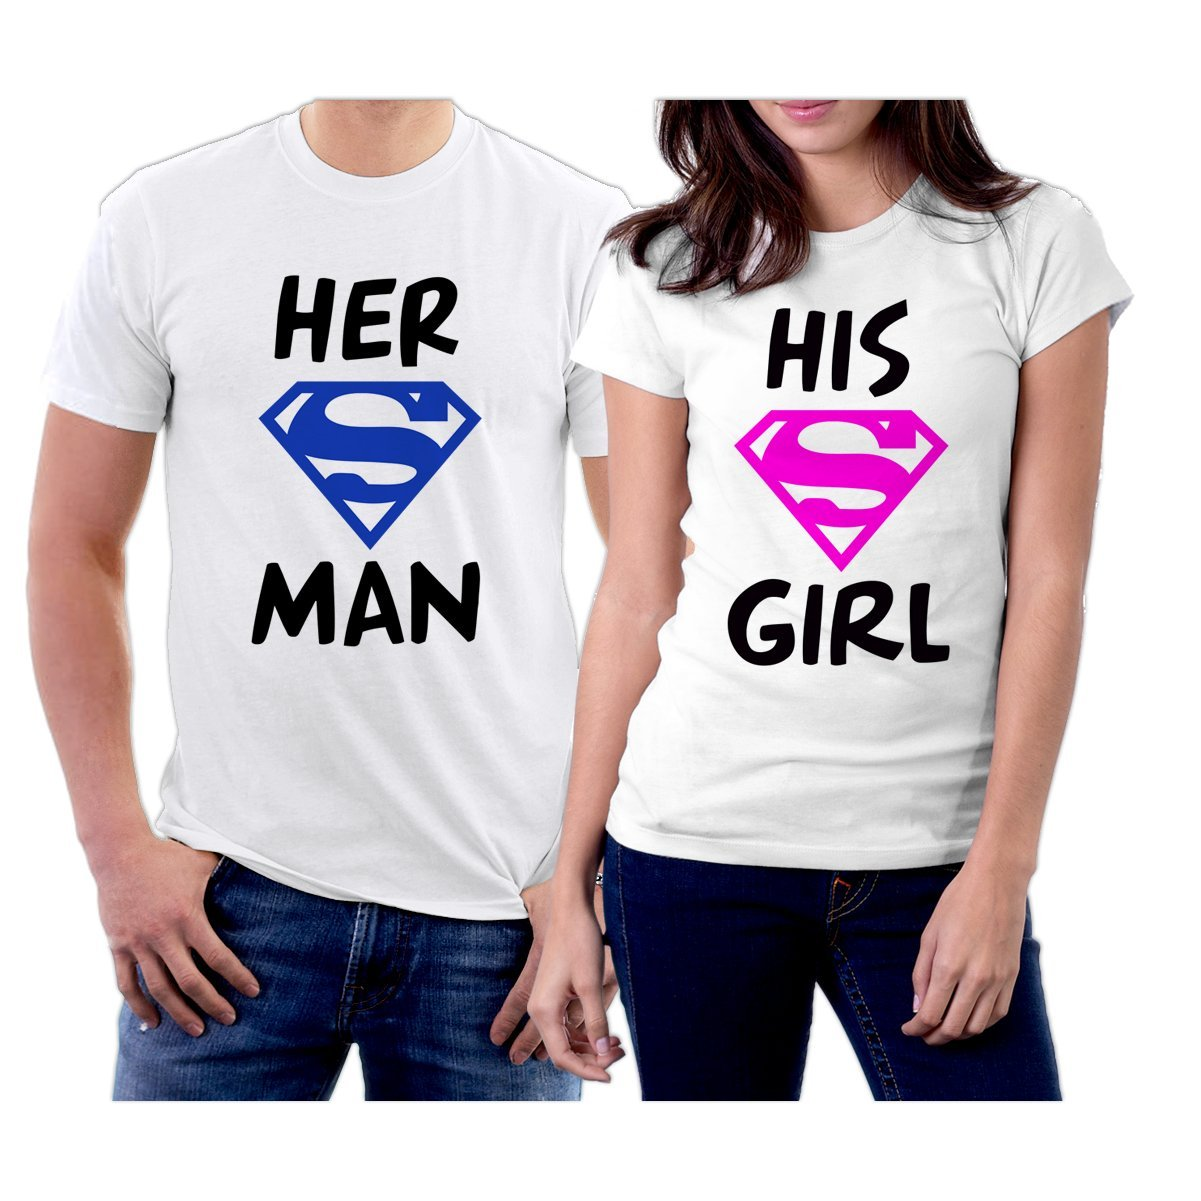 Matching Her Superman His Supergirl Couple T-Shirts Men M/Women XS White